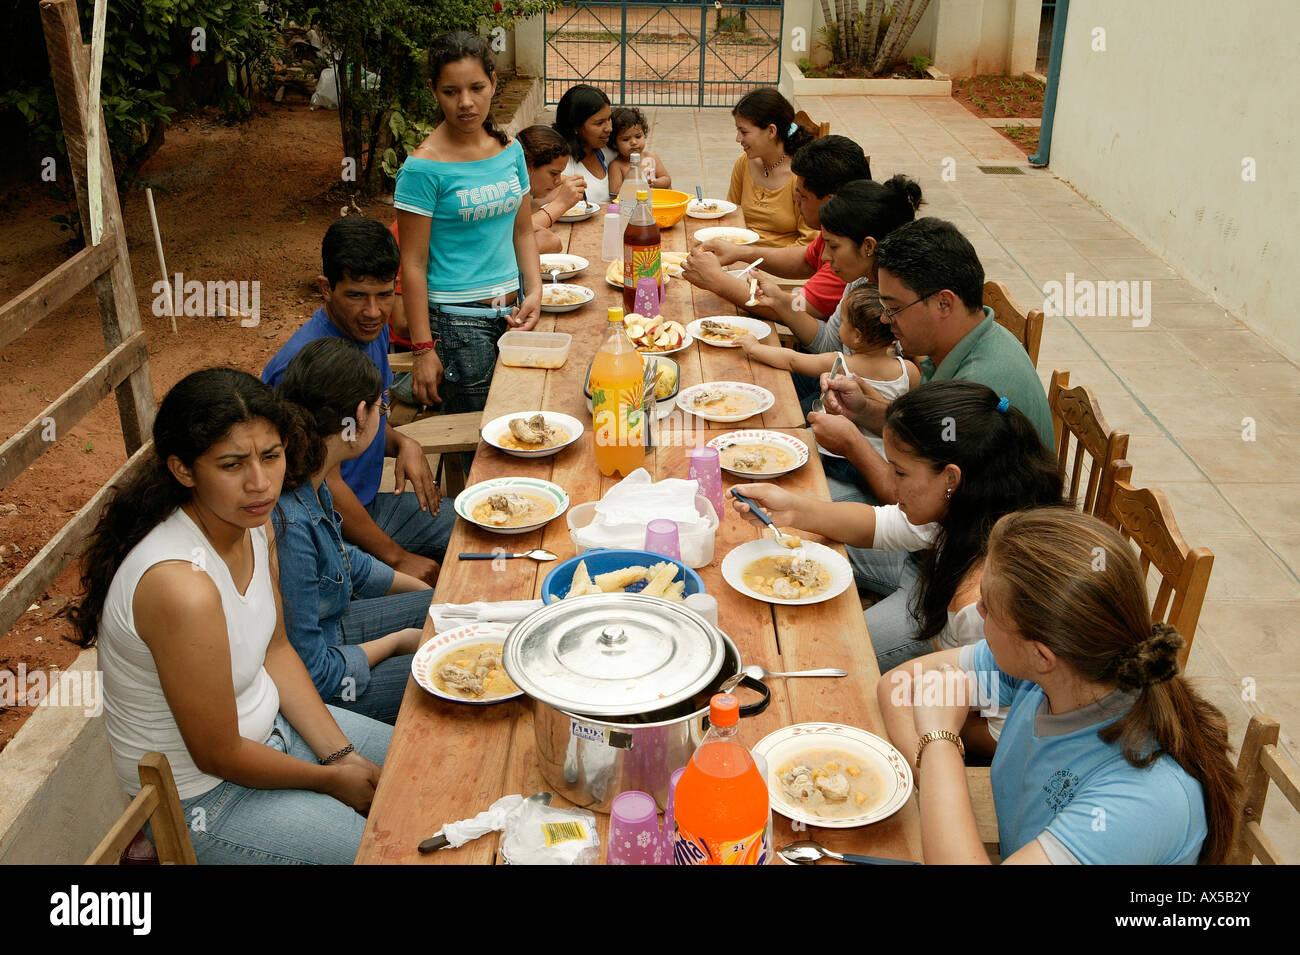 Group eating together on a terrace asuncion paraguay for The terrace group